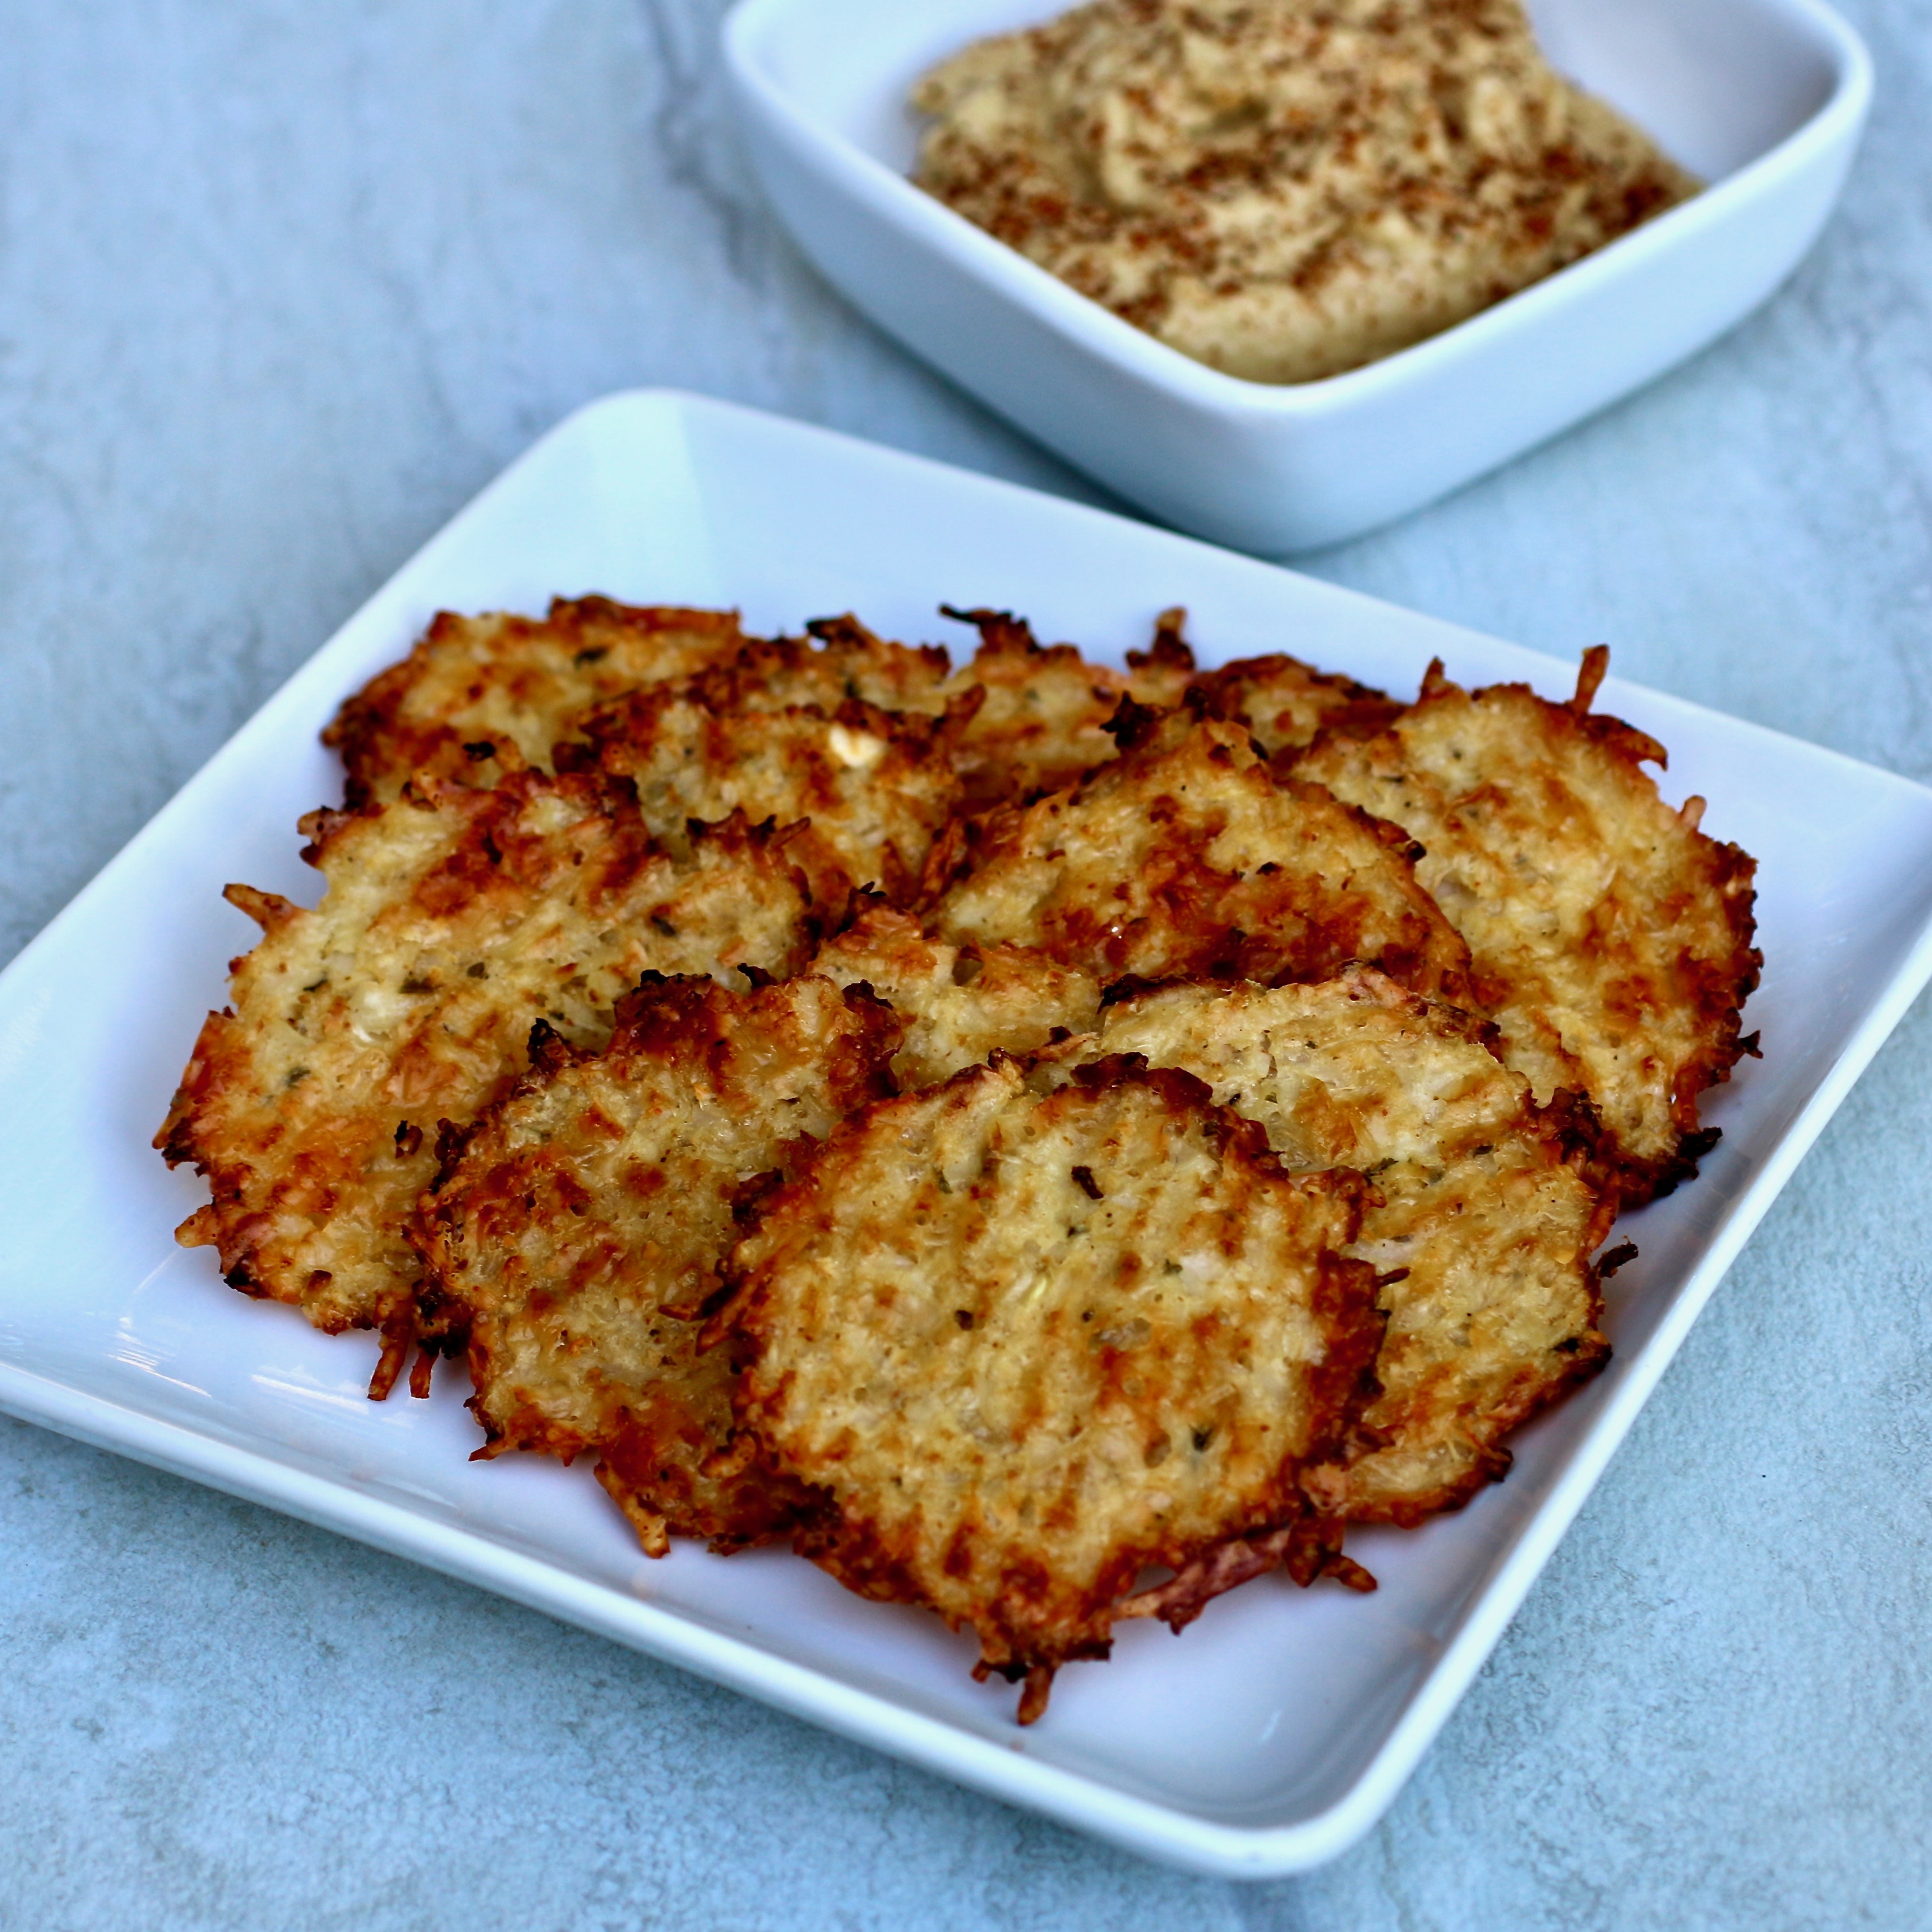 """It's a cake, it's a cracker, it's another creative use of cauliflower! """"A spicy keto cracker made with cauliflower instead of flour!"""" says My Hot Southern Mess. """"The perfect low-carb cracker. Store in an airtight container."""""""